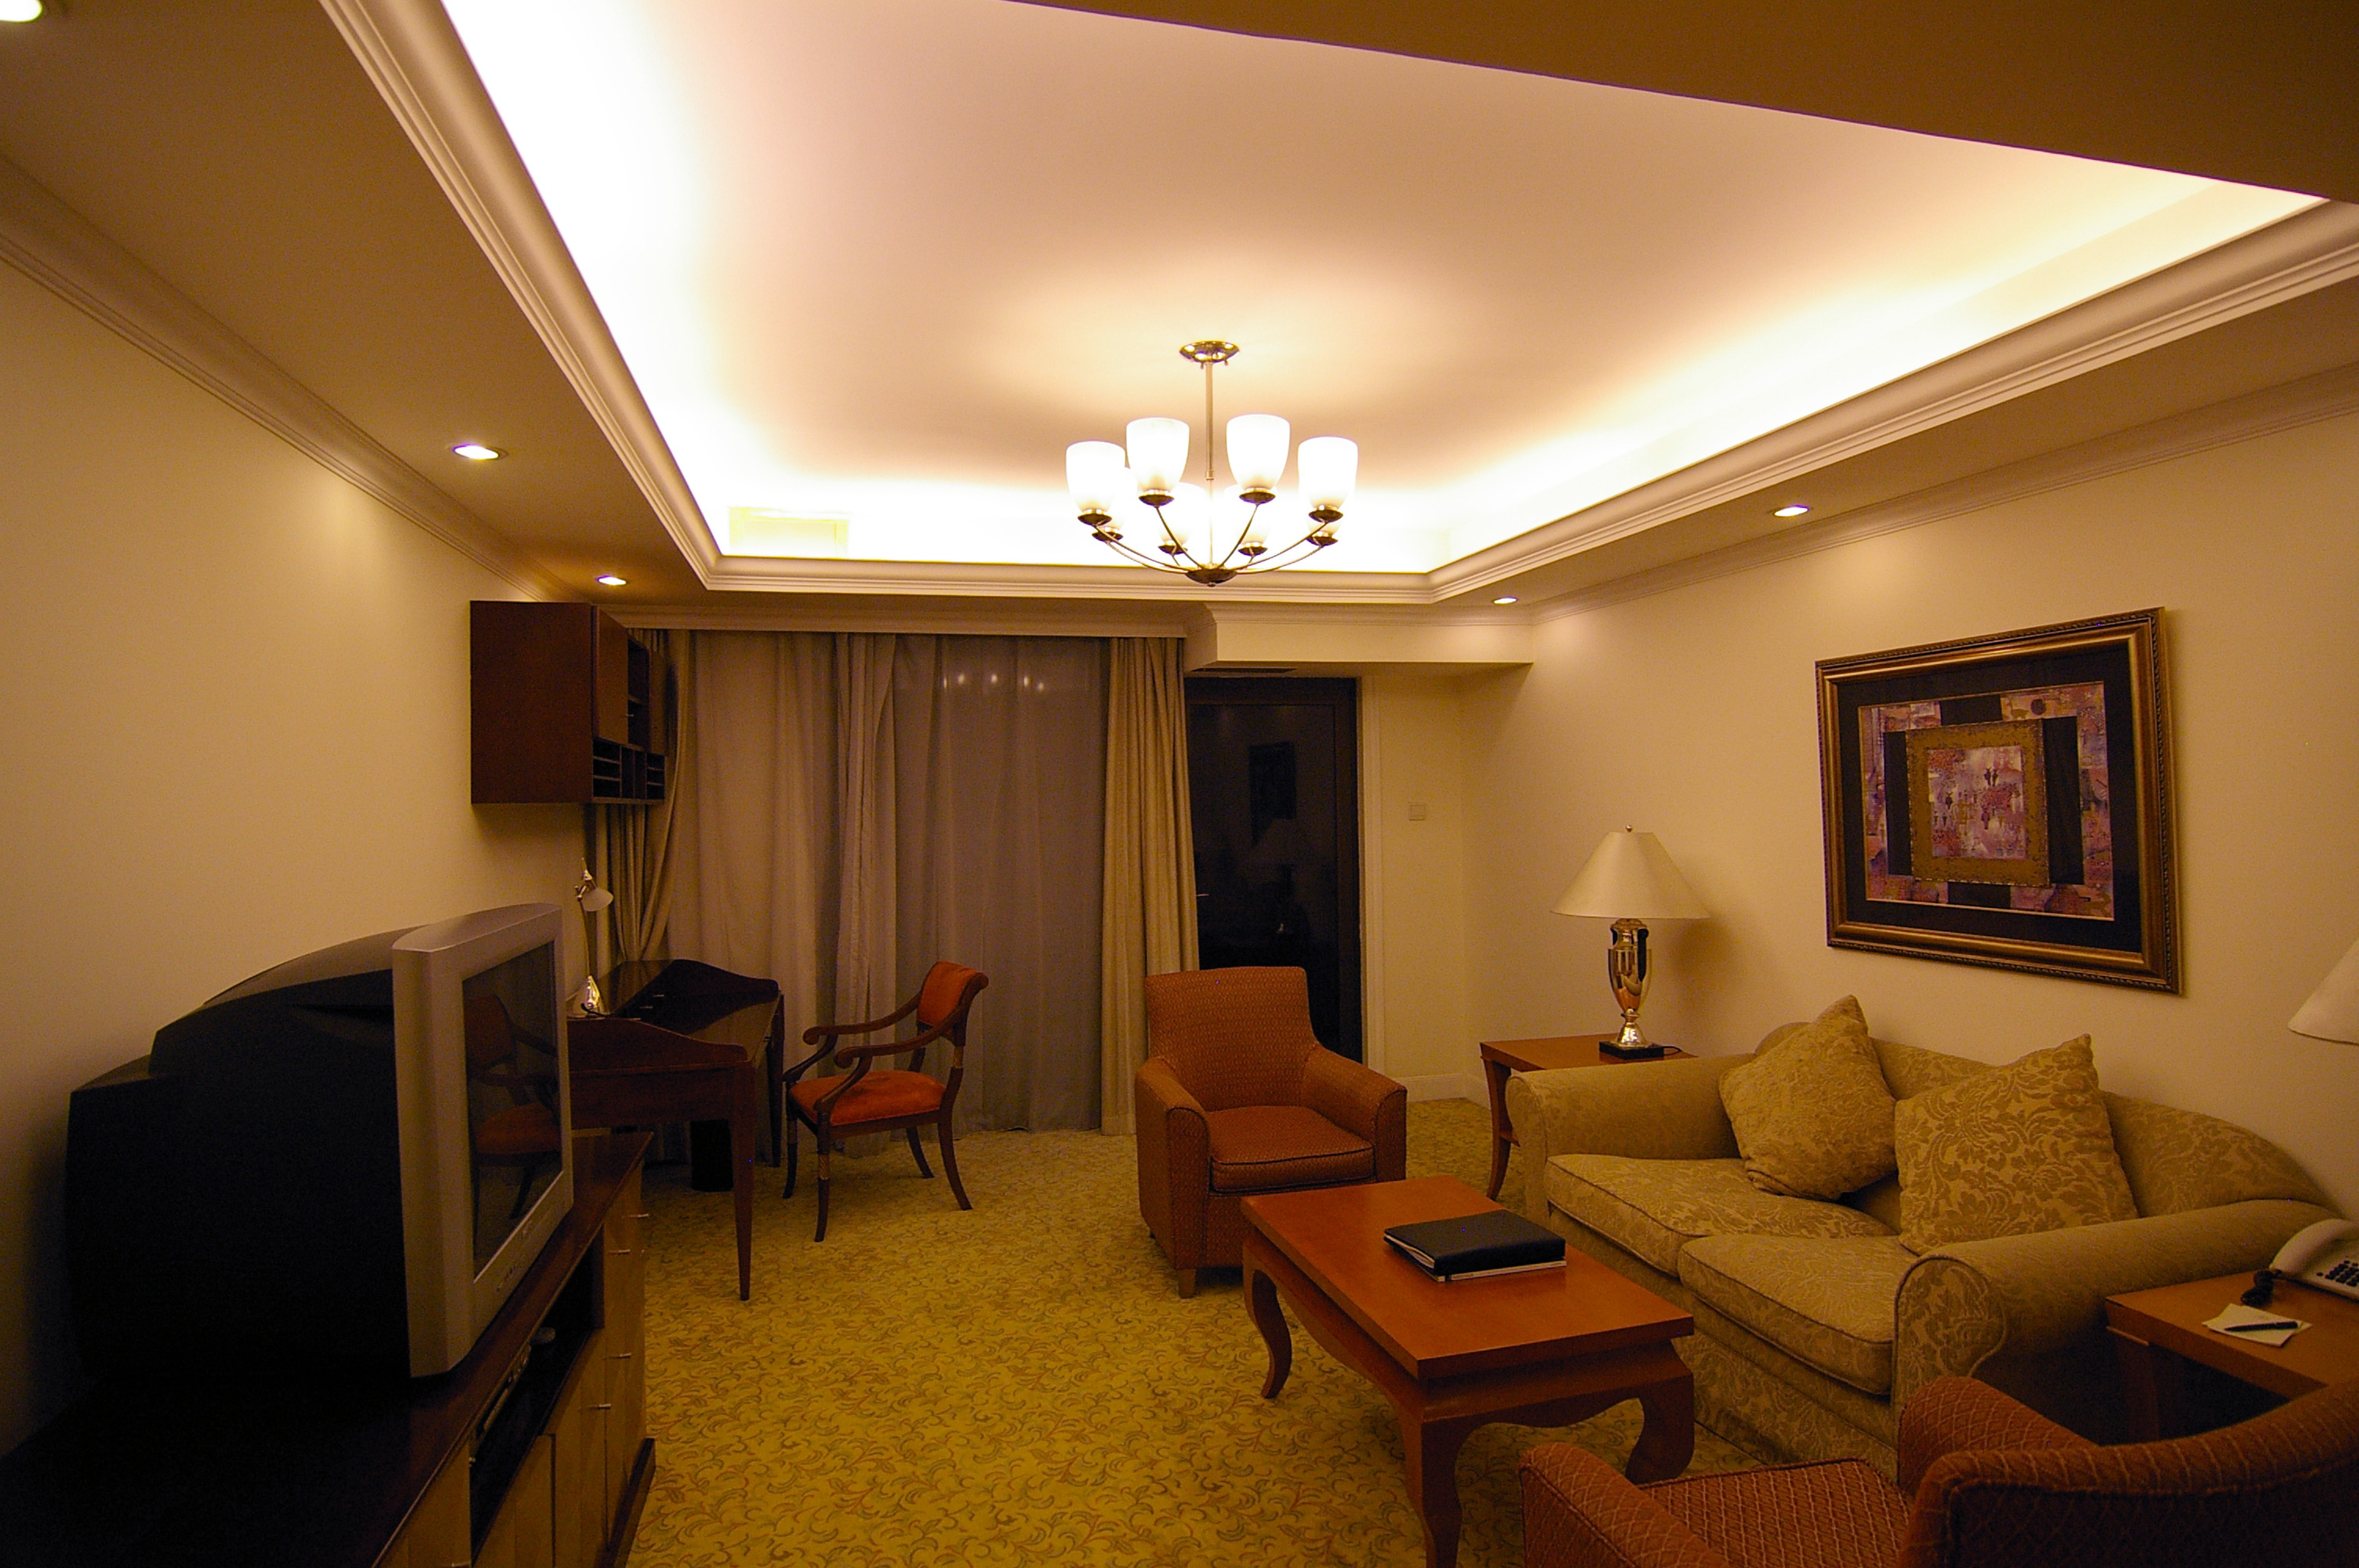 Apartment living room at night - A living room in a high rise apartment at night soft chairs tv and